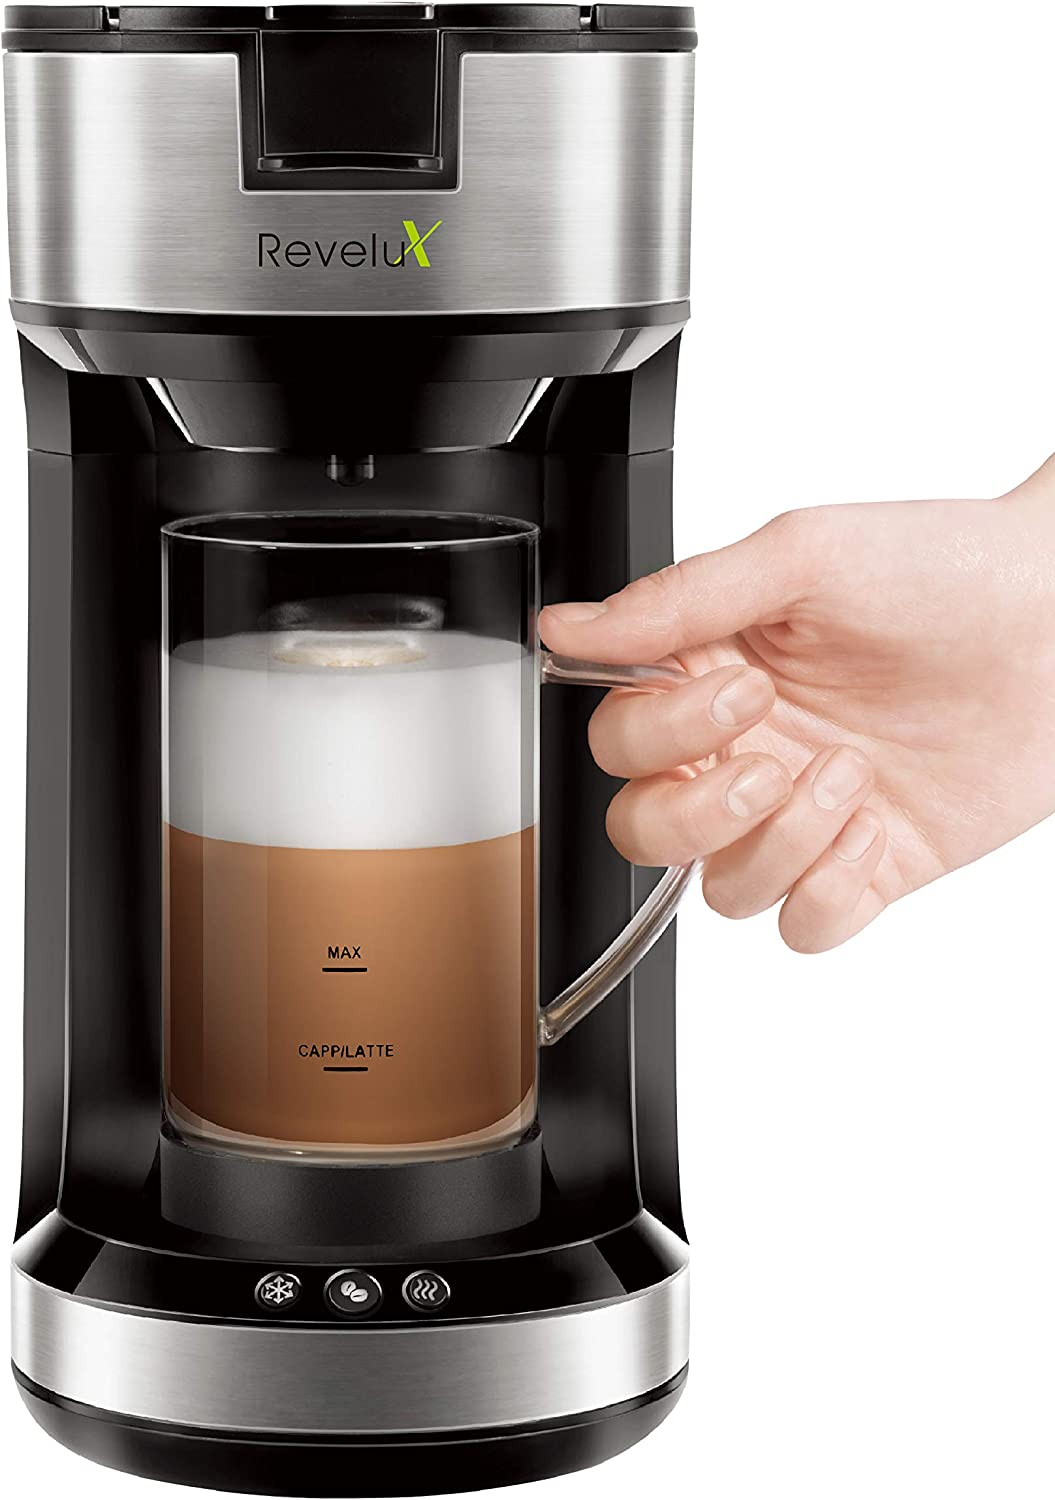 Revelux Single Serve Coffee Maker with Milk Frother, Brew and Froth Coffee Maker for Latte, Cappuccino, Single Cup Coffee Maker Compatible with K-Cup ...